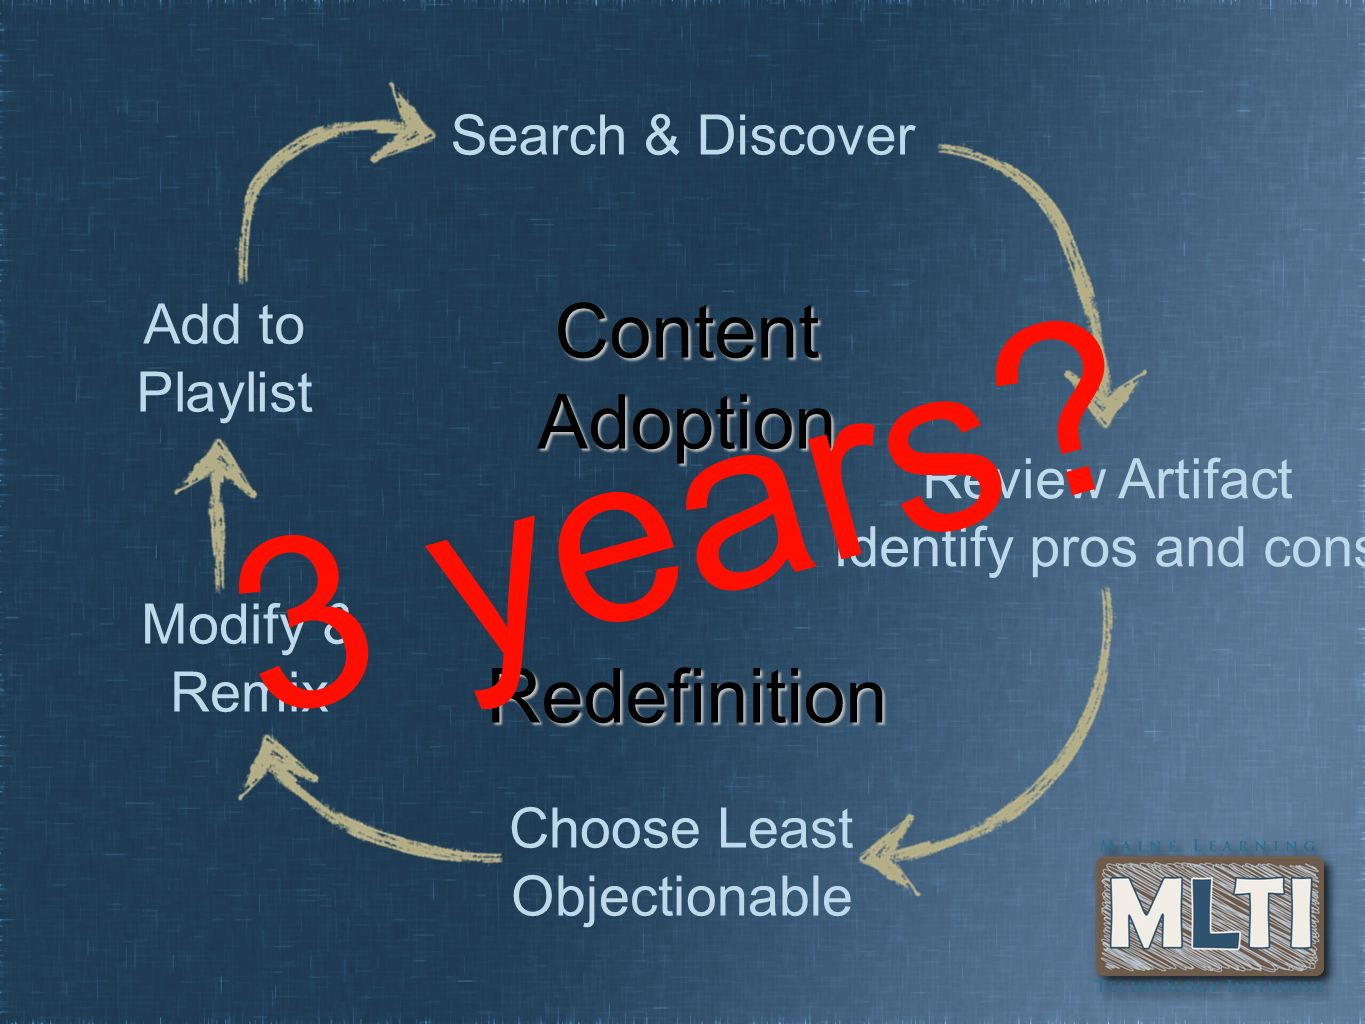 Content Adoption Redefinition Search & Discover Review Artifact Identify pros and cons Choose Least Objectionable Modify & Remix Add to Playlist 3 years